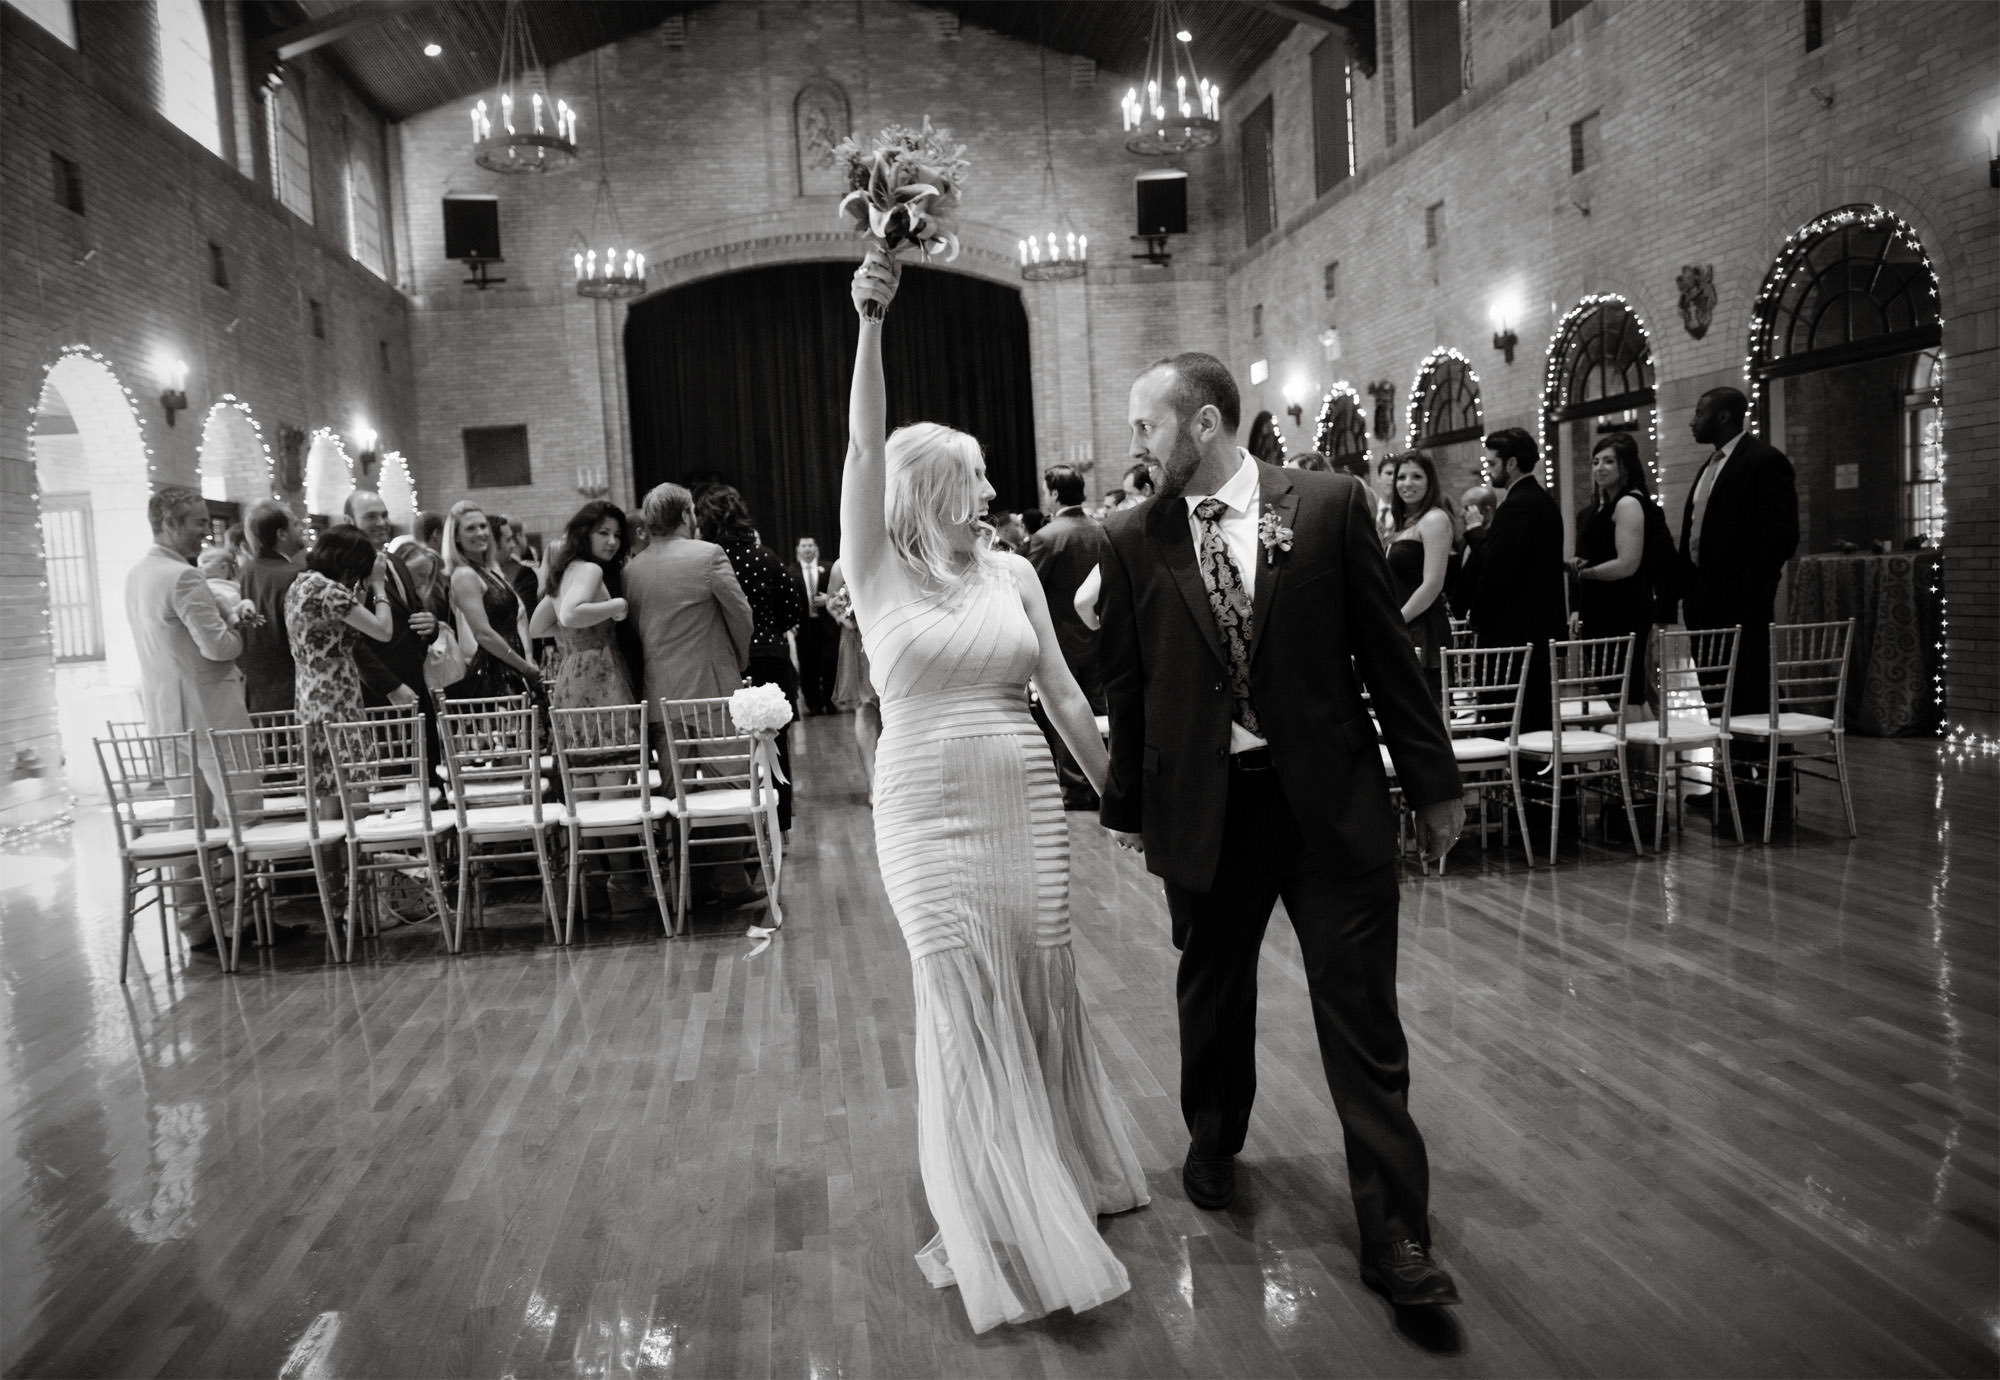 The bride and groom celebrate at the conclusion of their wedding ceremony at St Francis Hall.